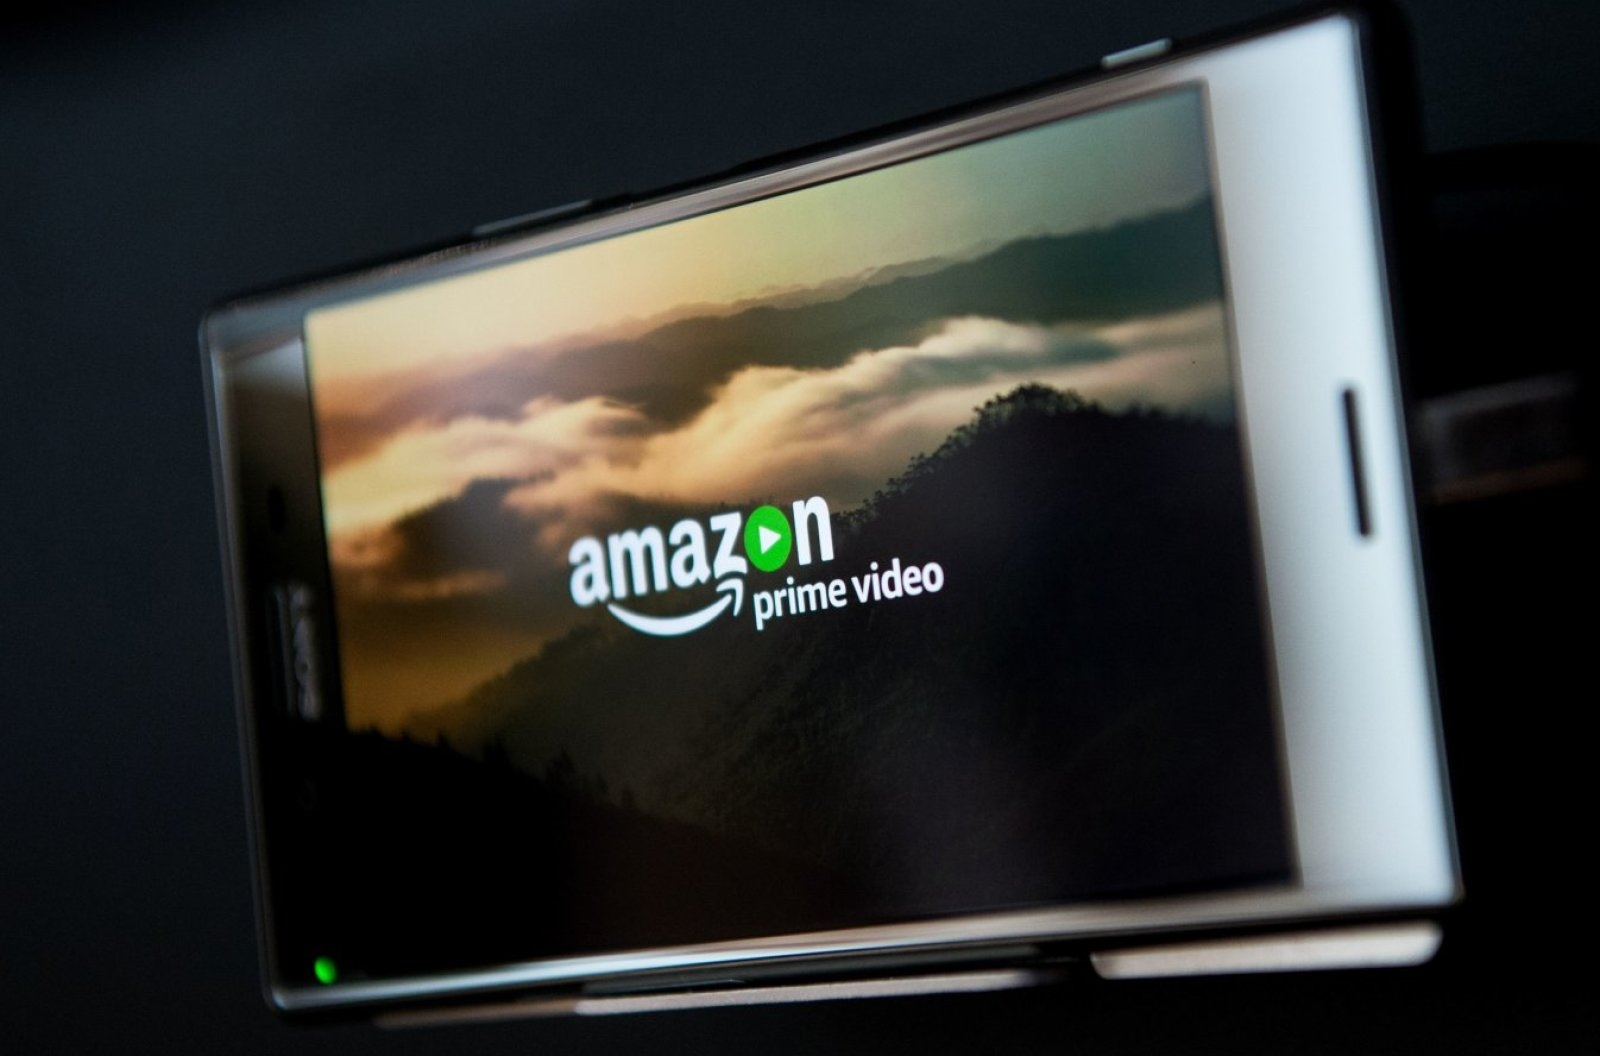 Amazon will pull its movies from theaters to Prime faster | DeviceDaily.com